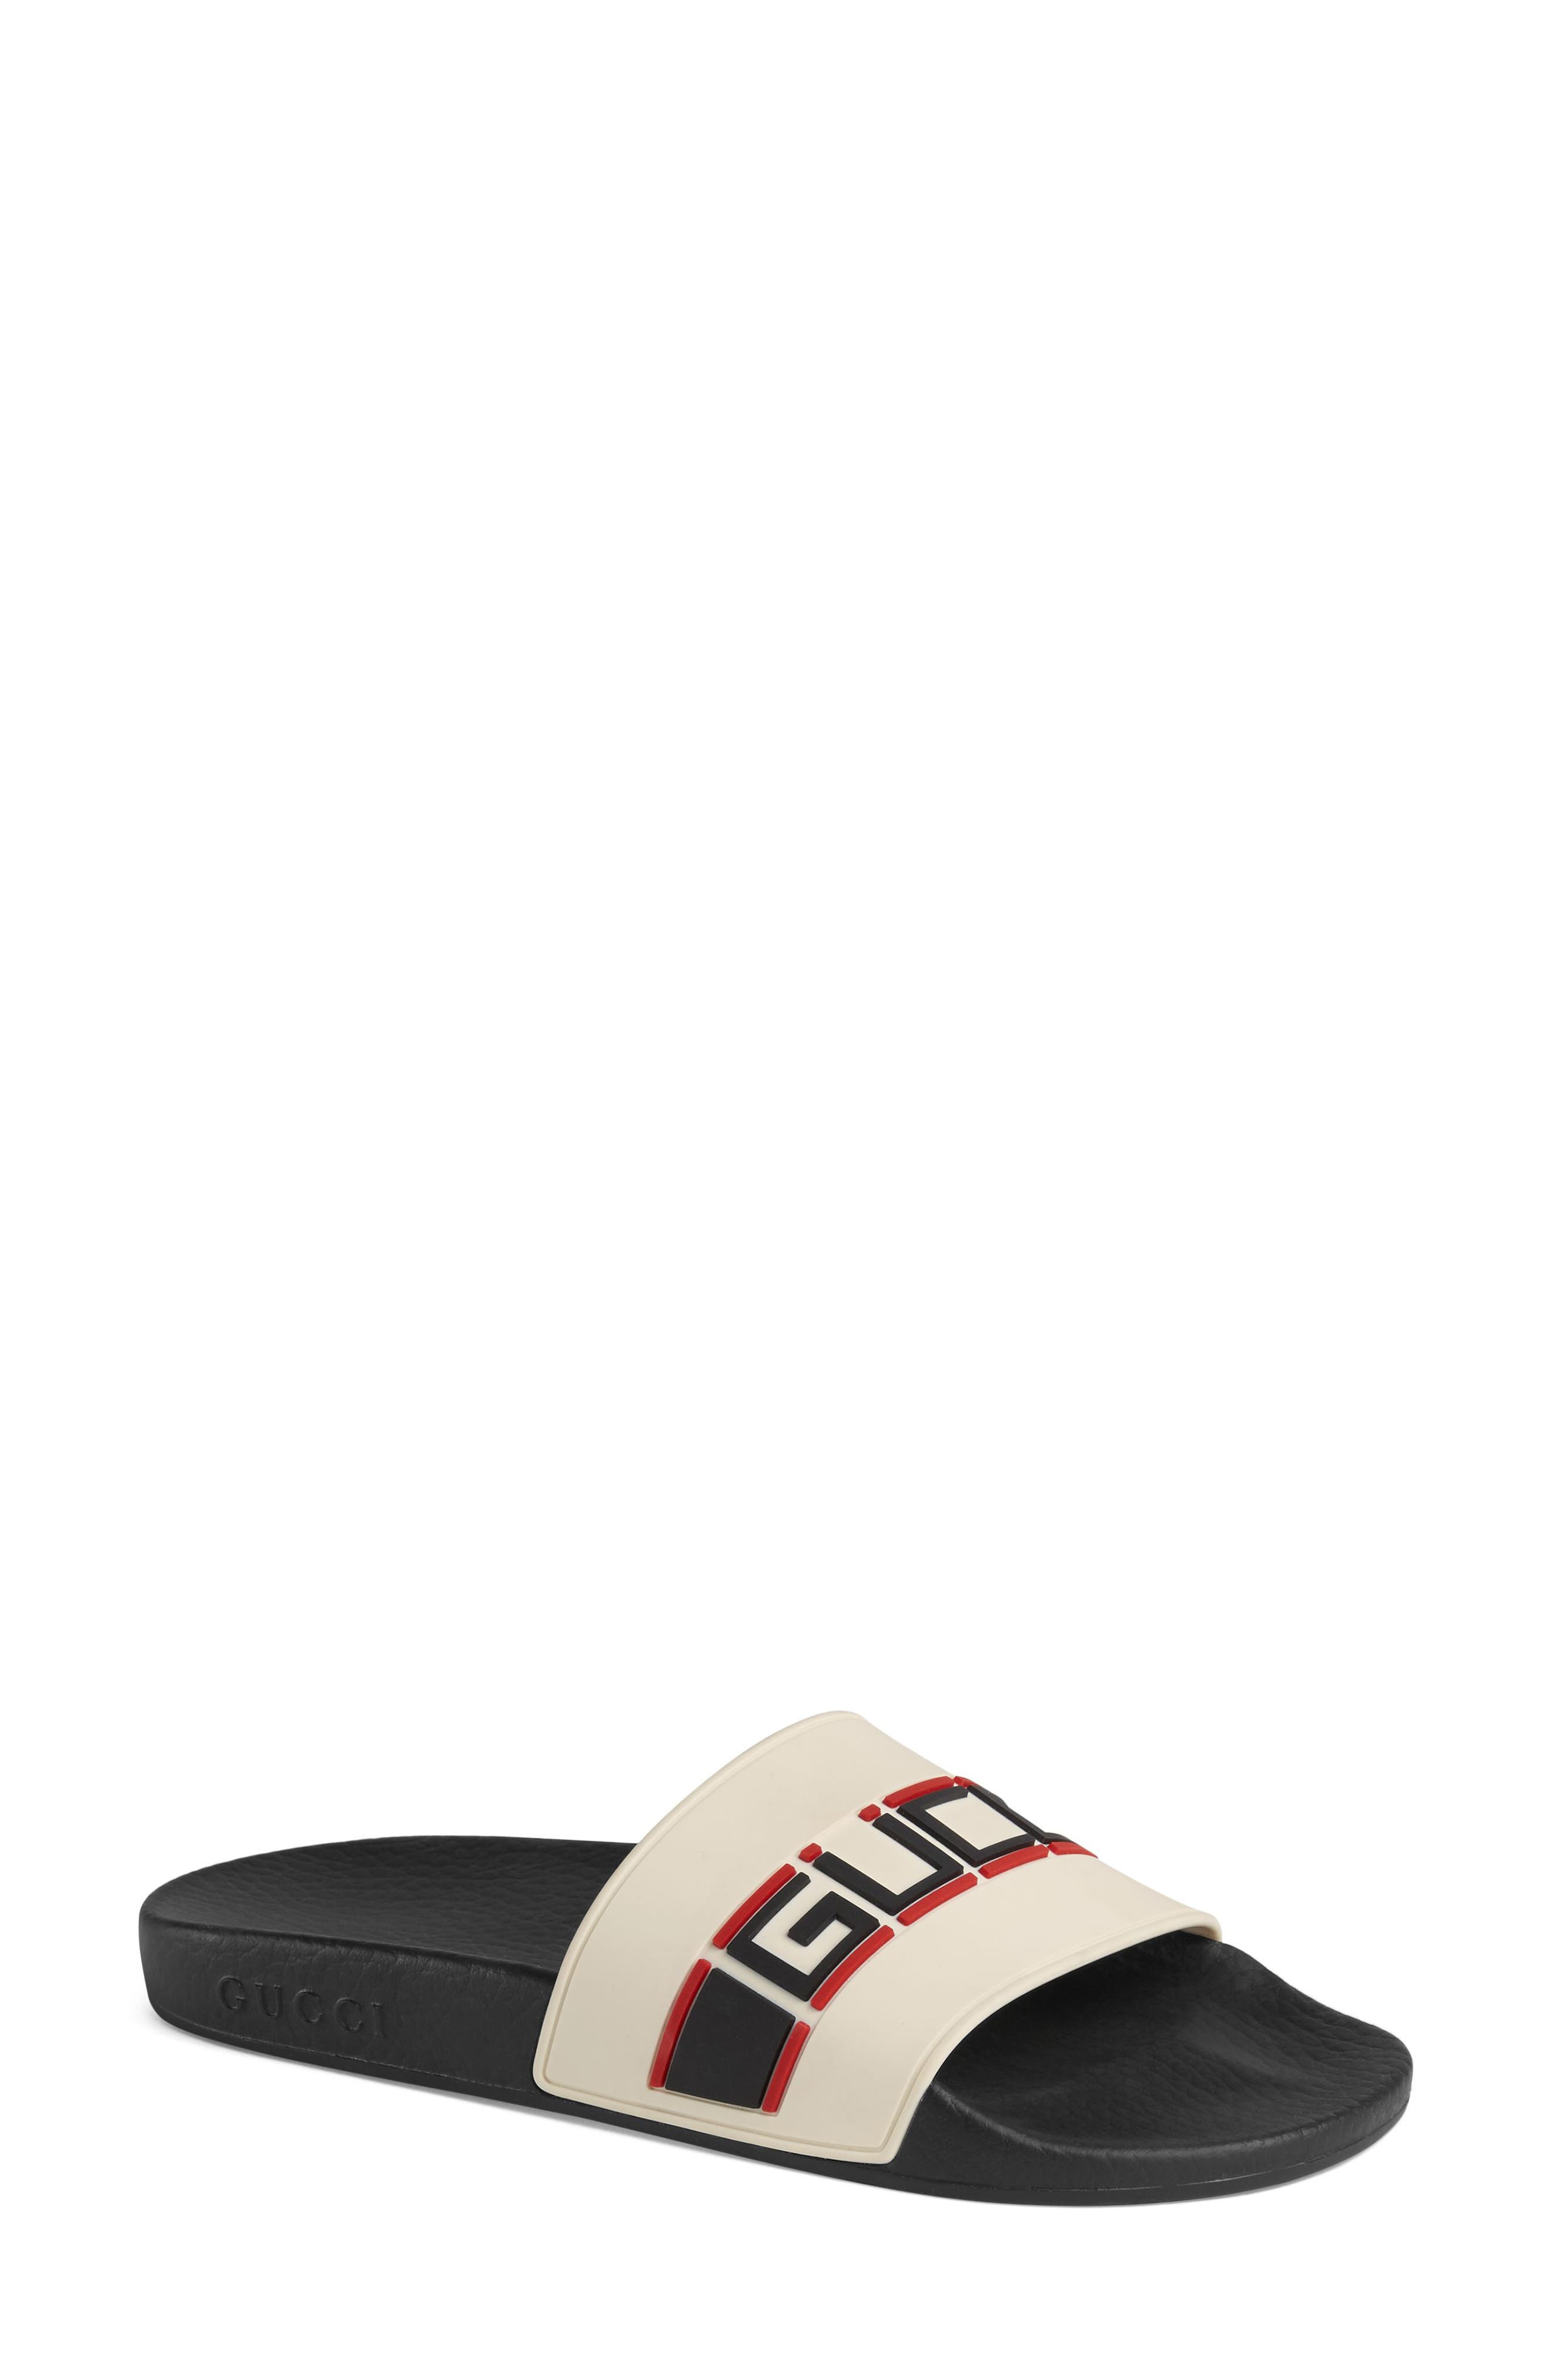 Gucci Pursuit Logo Slide Sandal (Women)